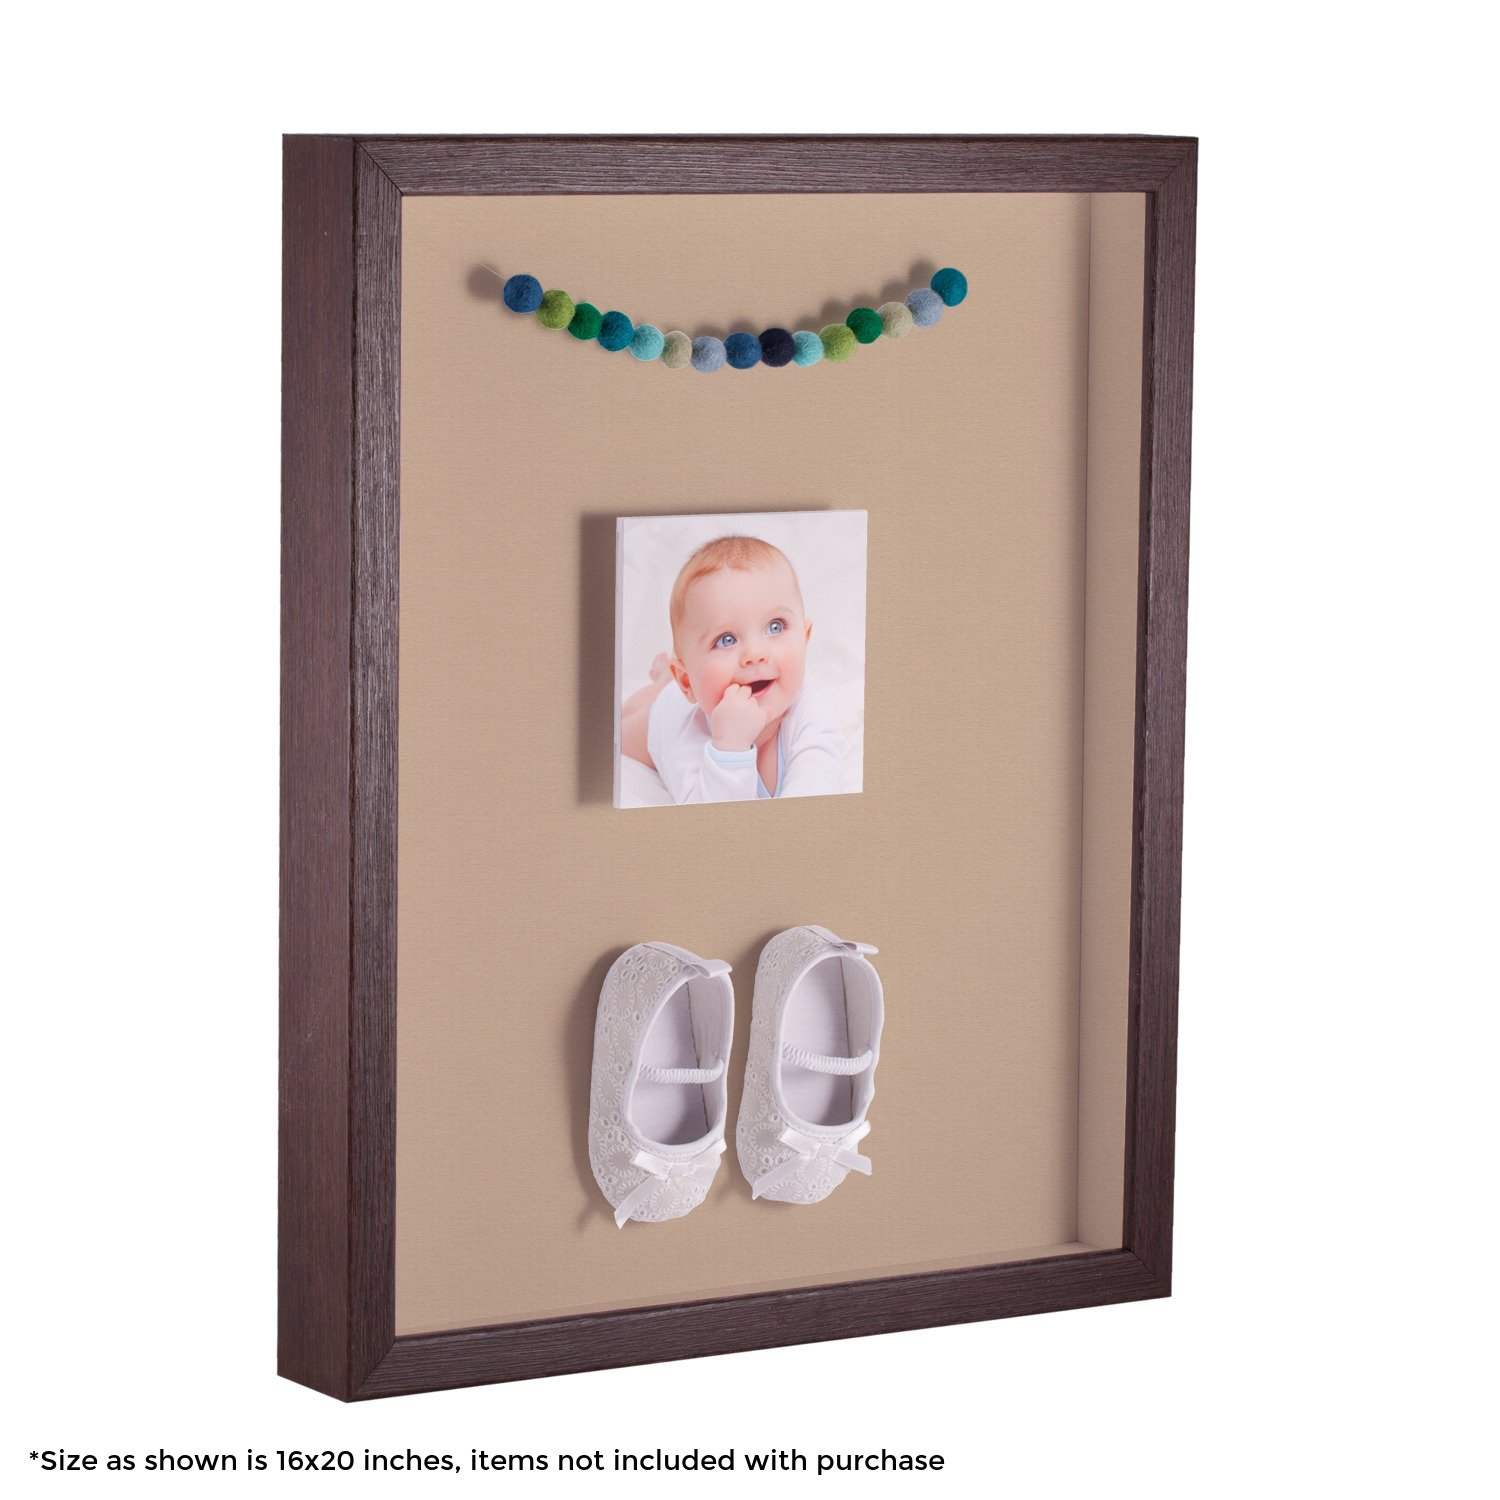 ArtToFrames 15 x 18 Inch Shadow Box Picture Frame, with a Verlinga Brown 1'' Shadowbox Frame and Scotch Mist Mat